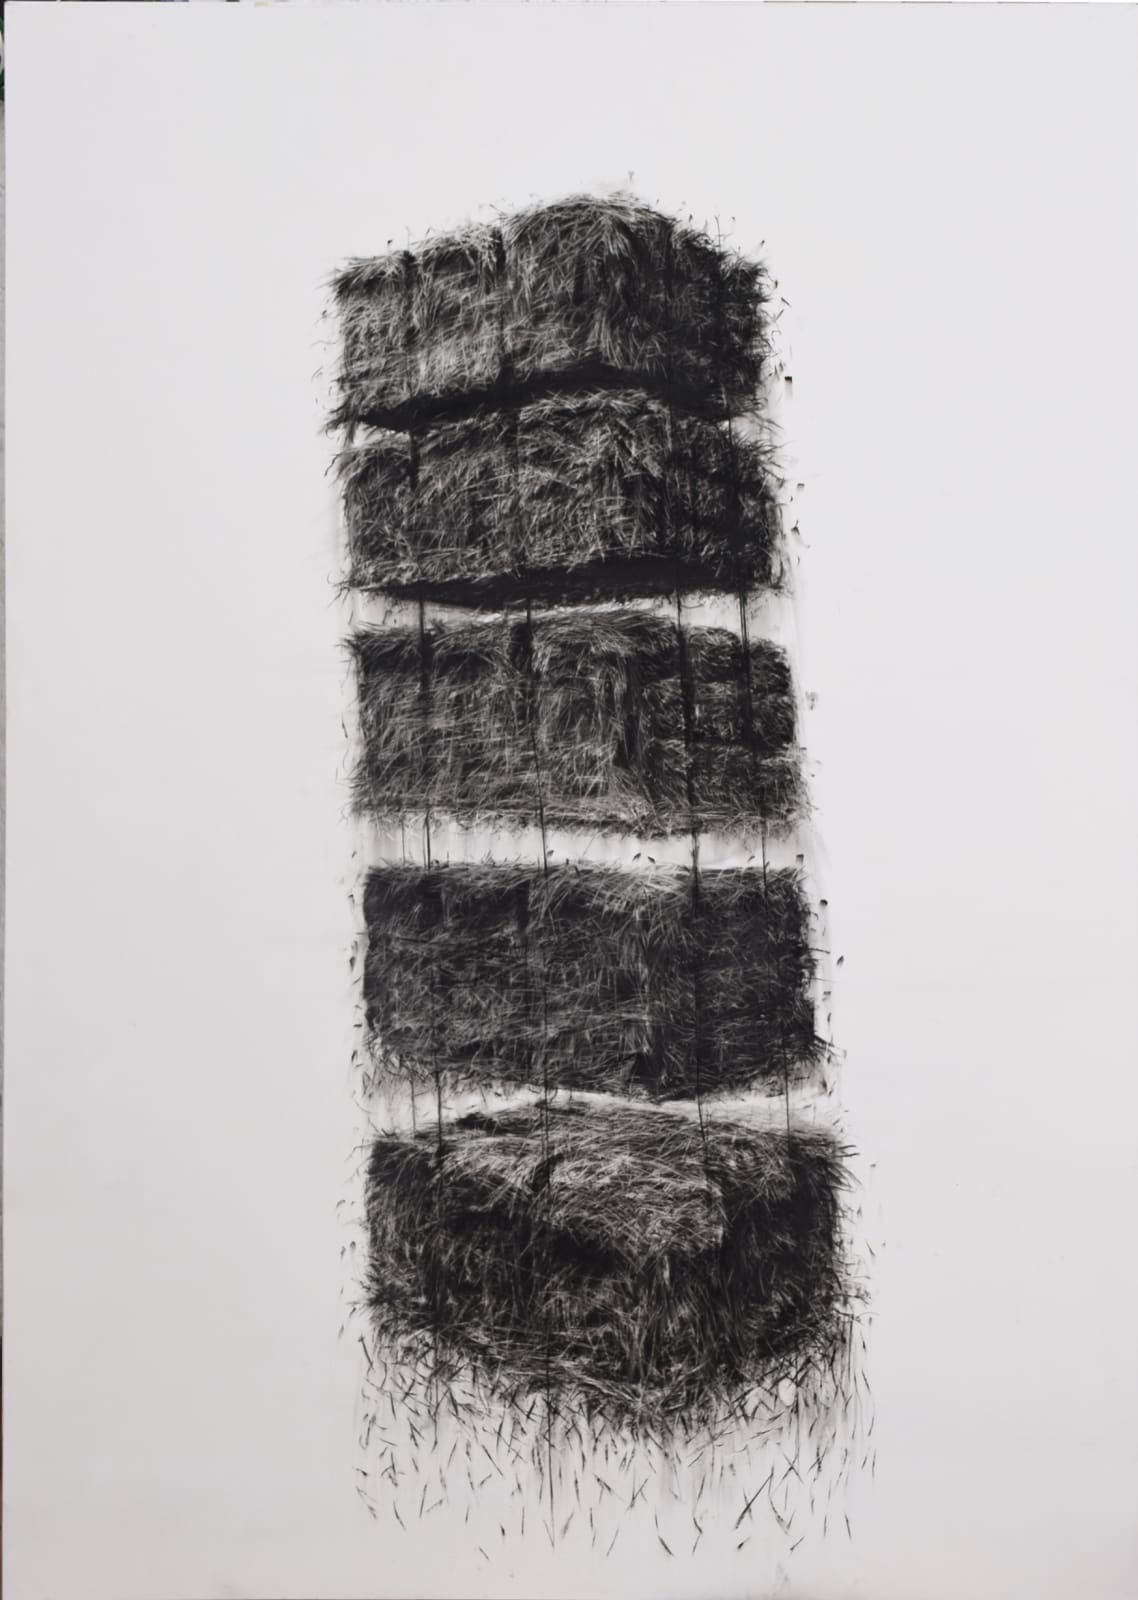 Siega 4, 2018 Charcoal on paper 78 7/10 × 59 1/10 in 200 × 150 cm